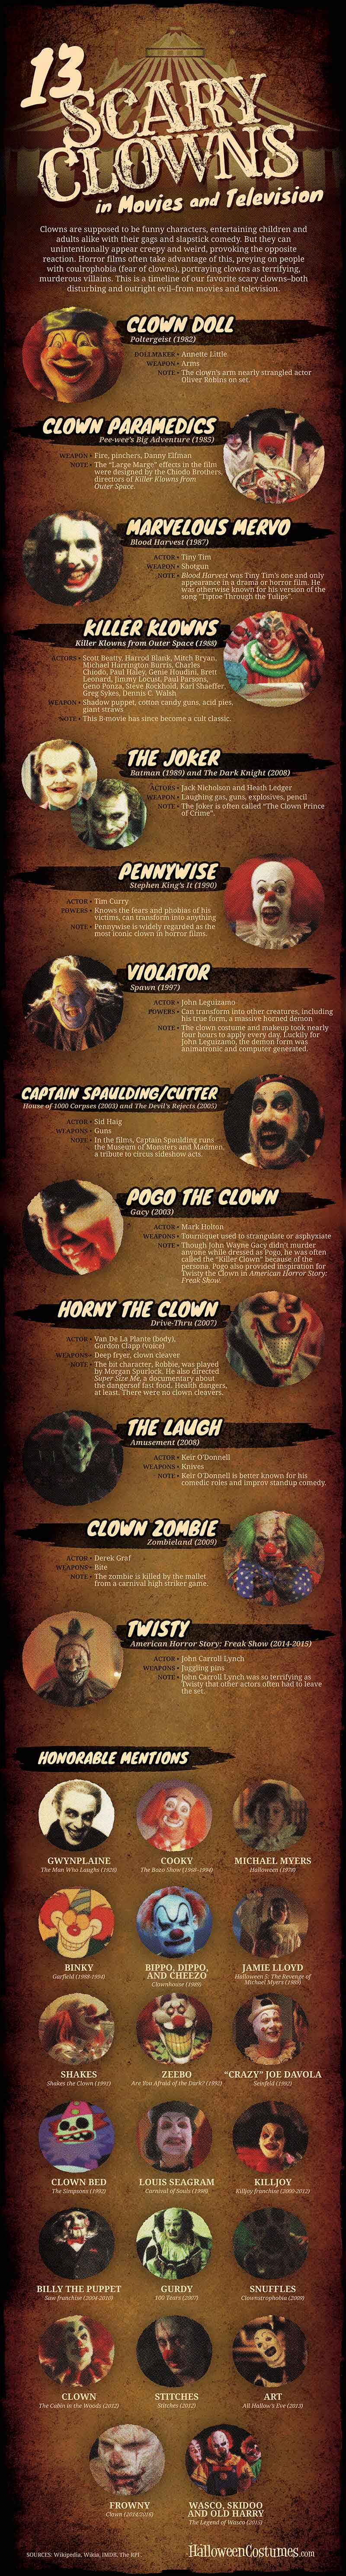 13 Scary Clowns in Movies and TV Infographic